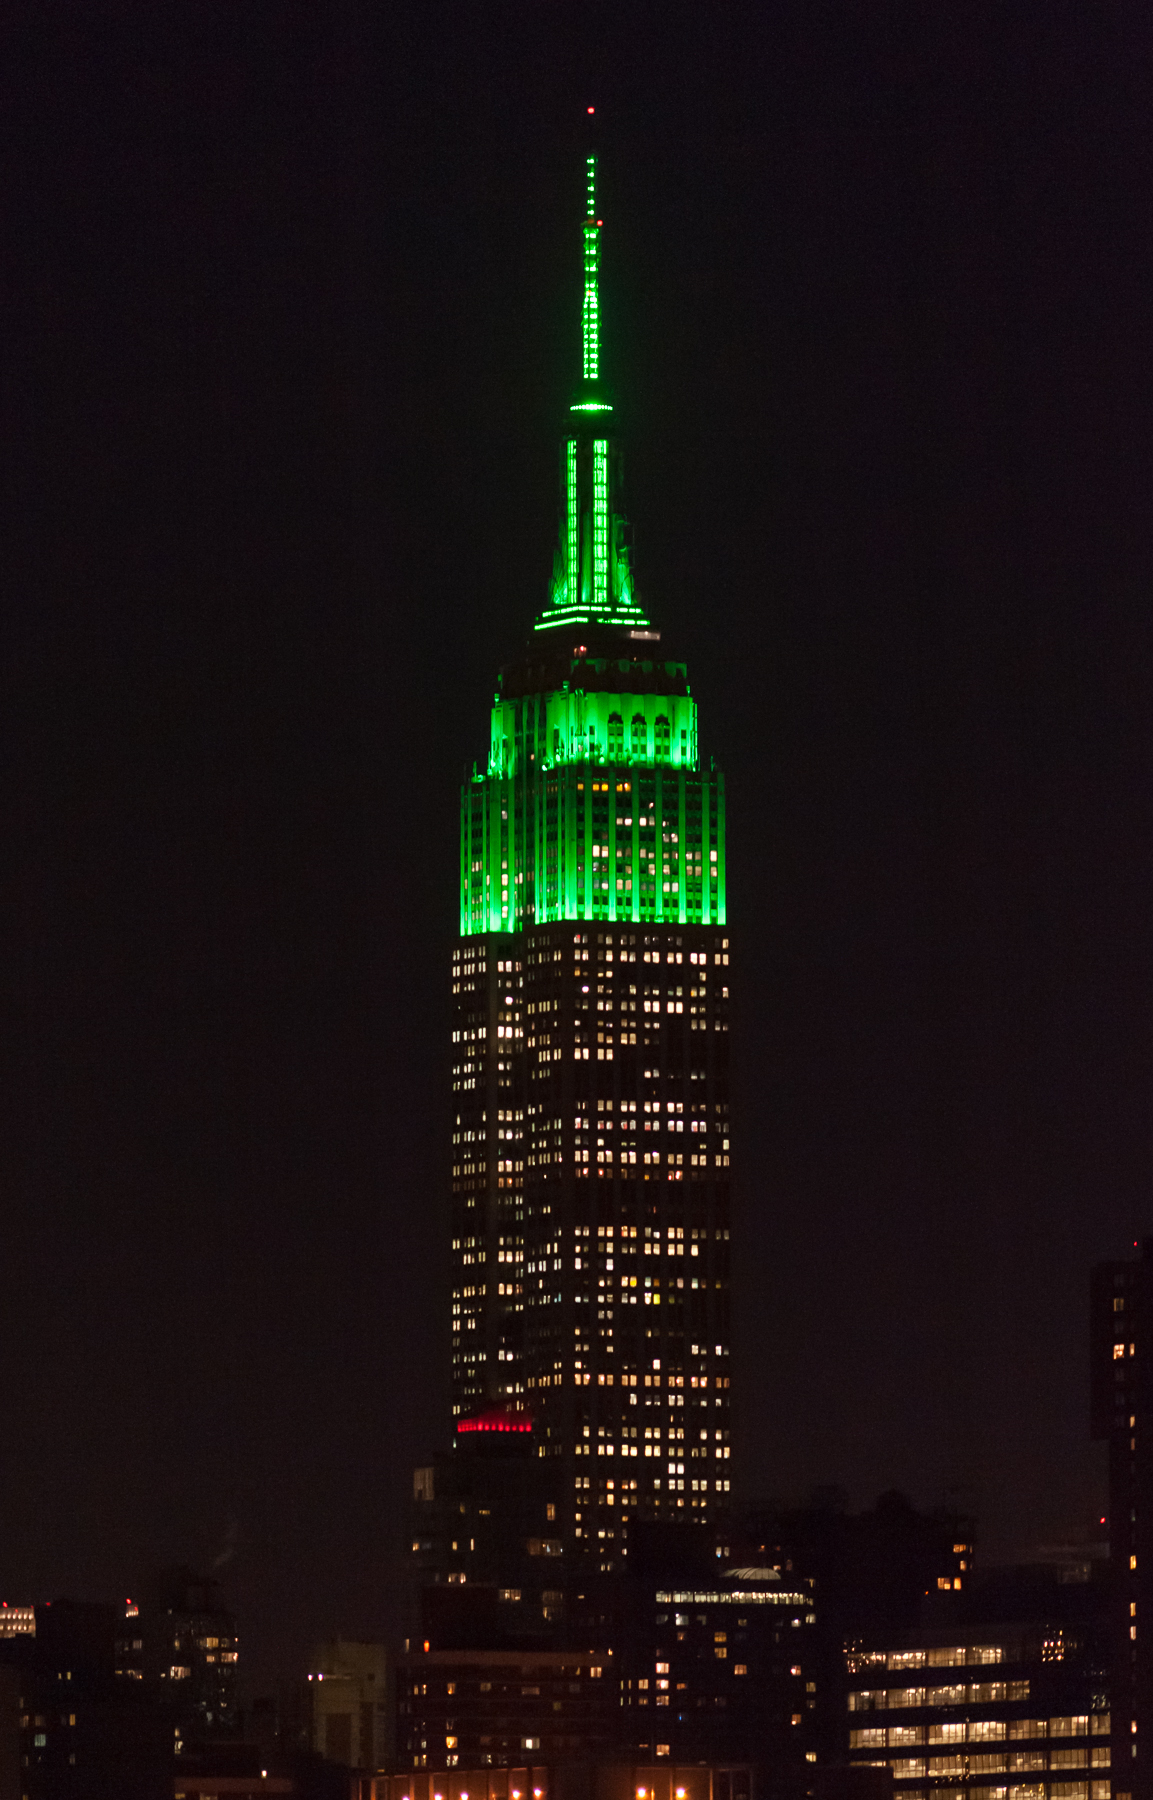 Tower Lighting 2017 06 26 00:00:00 | Empire State Building For Empire State Building Lights Schedule